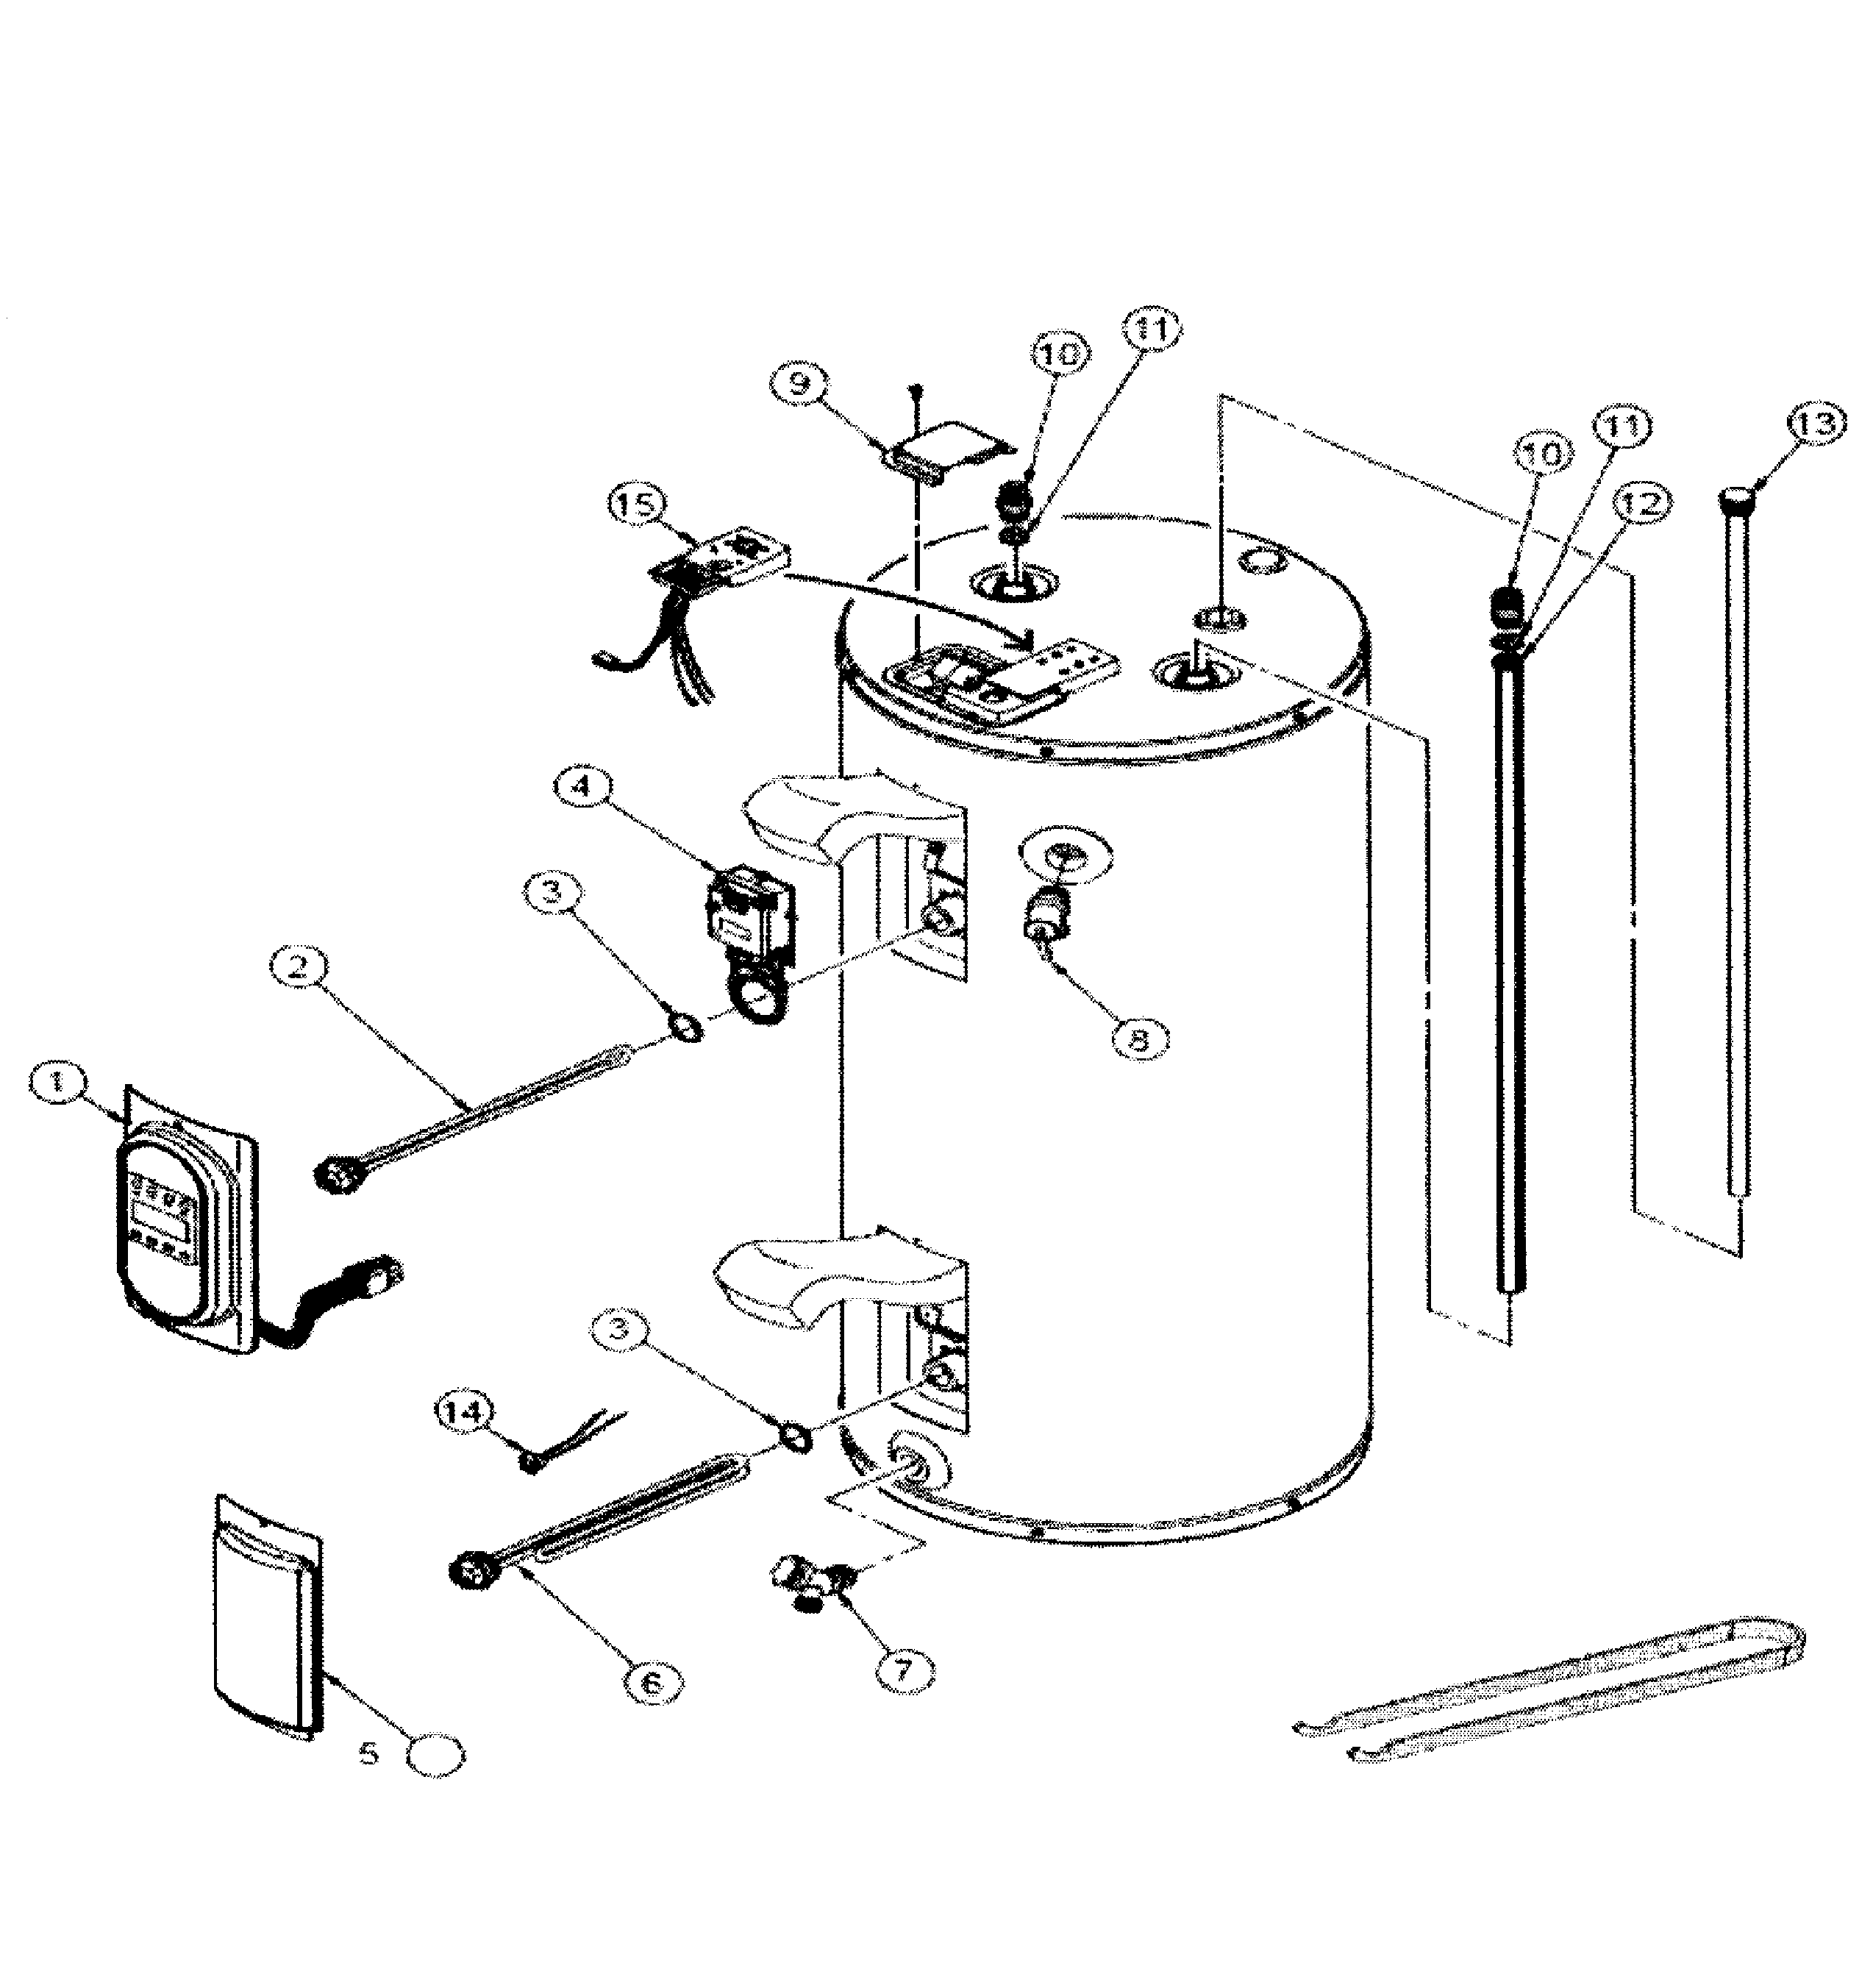 whirlpool water heater parts diagram